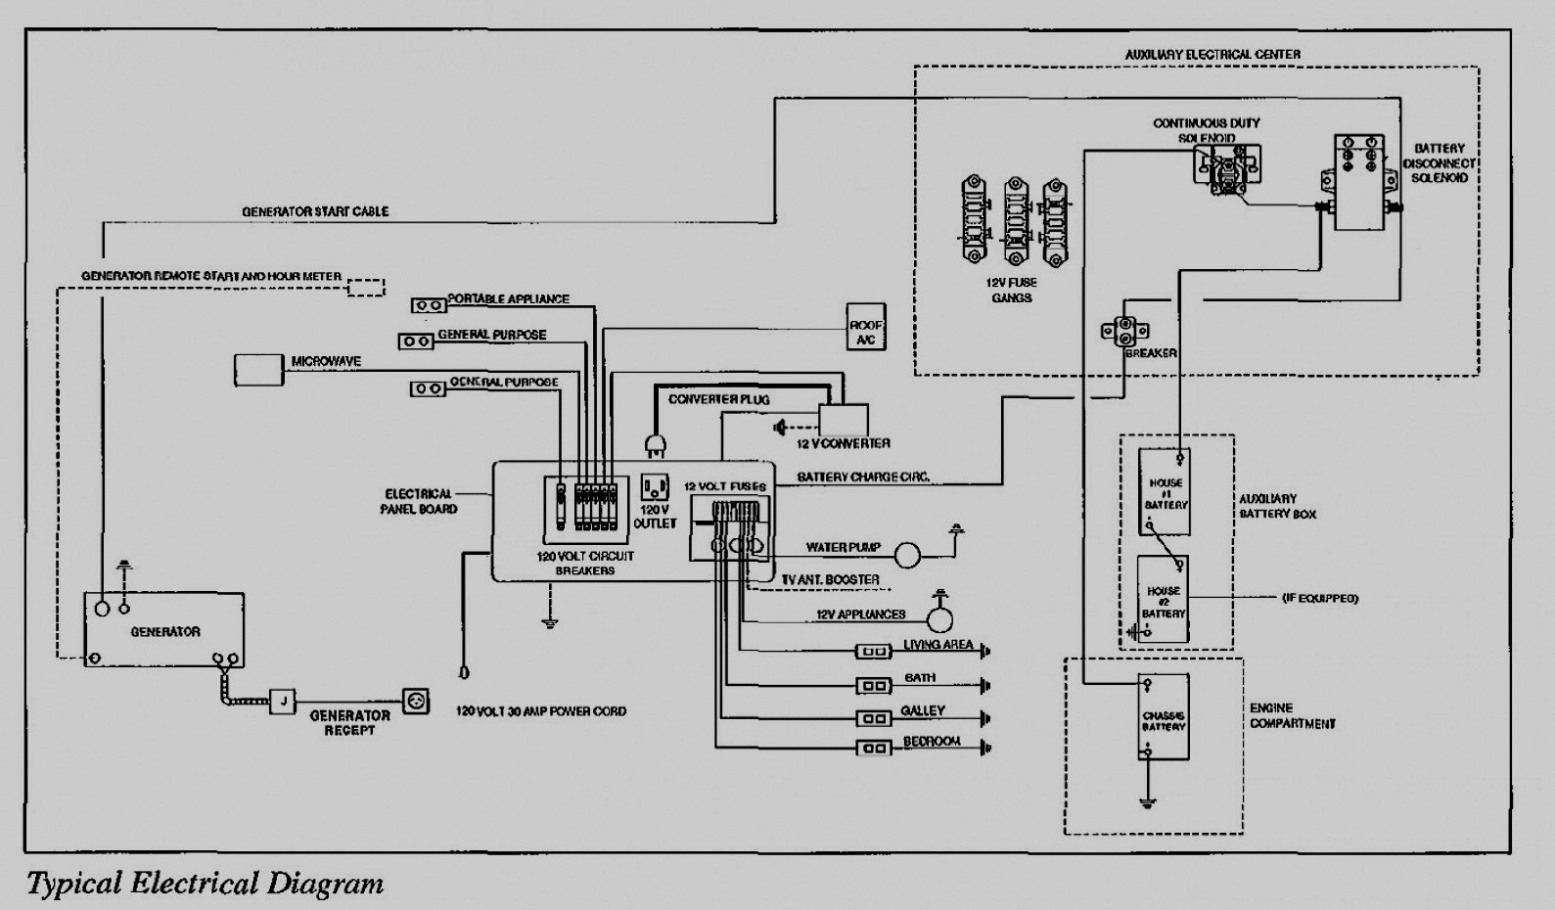 Wfco 55 Amp Power Converter Wiring Diagram | Wiring Diagram - Wfco 8955 Wiring Diagram